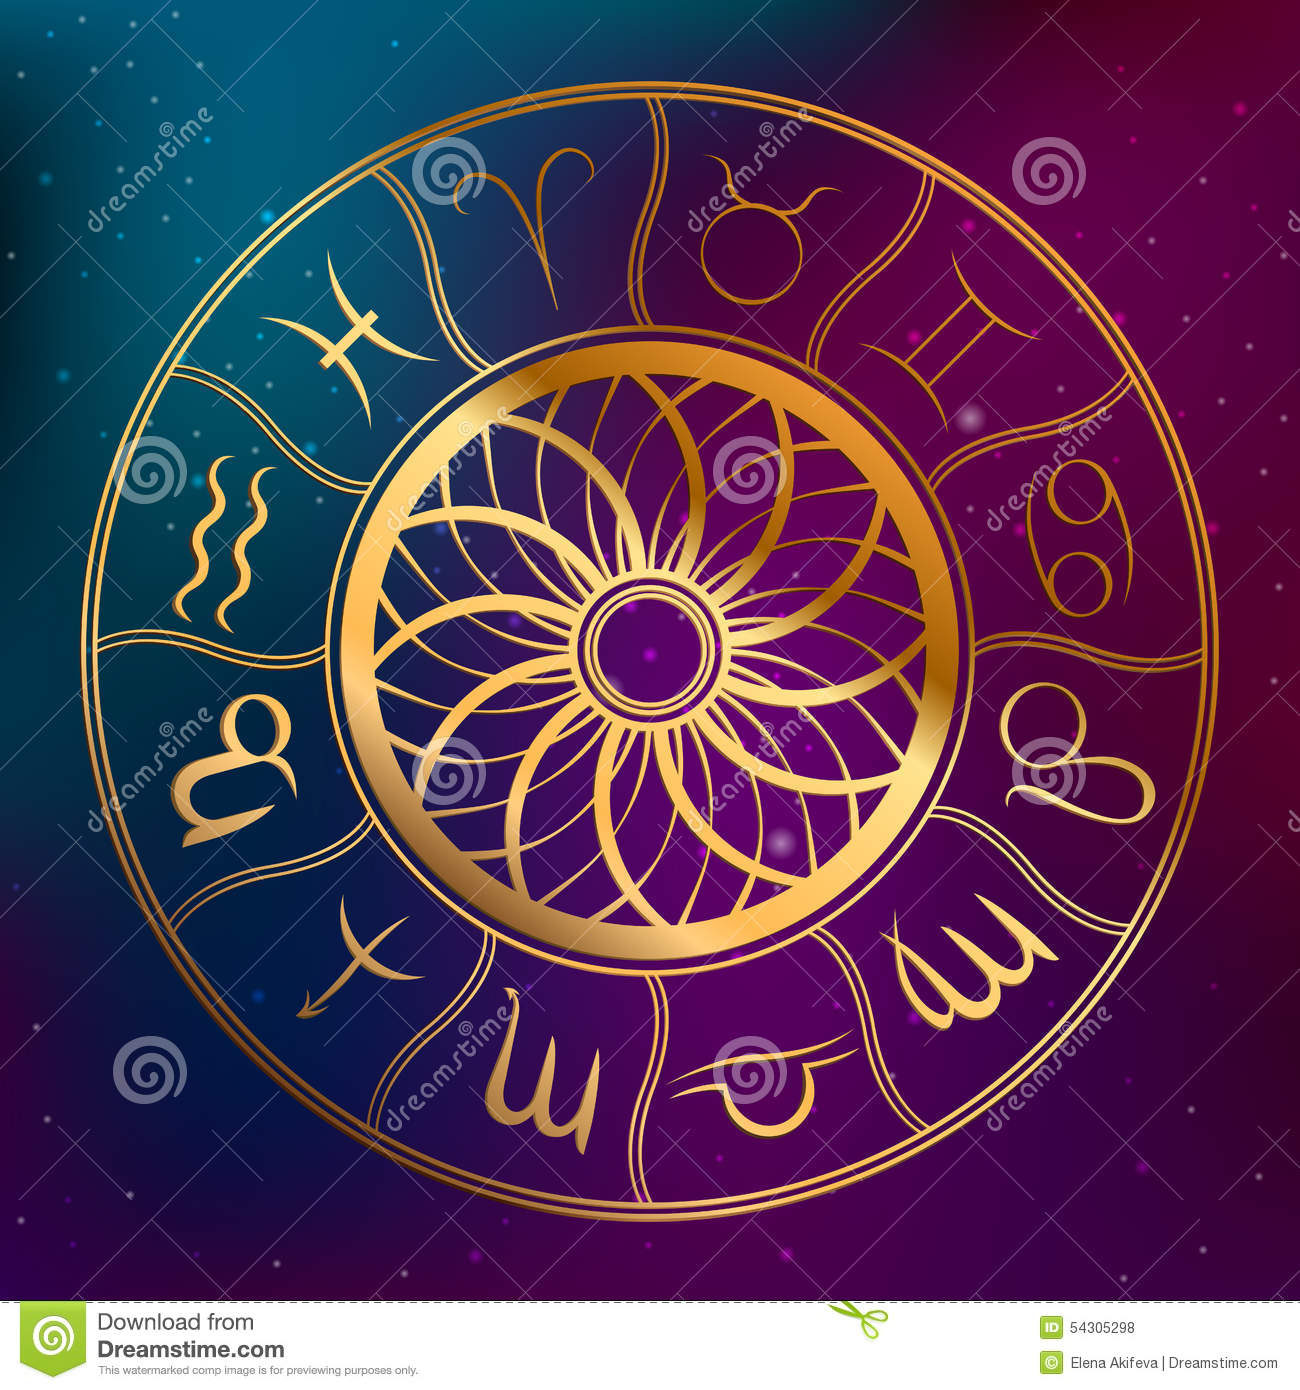 abstract-background-astrology-concept-horoscope-zodiac-signs-illustration-vector-54305298.jpg